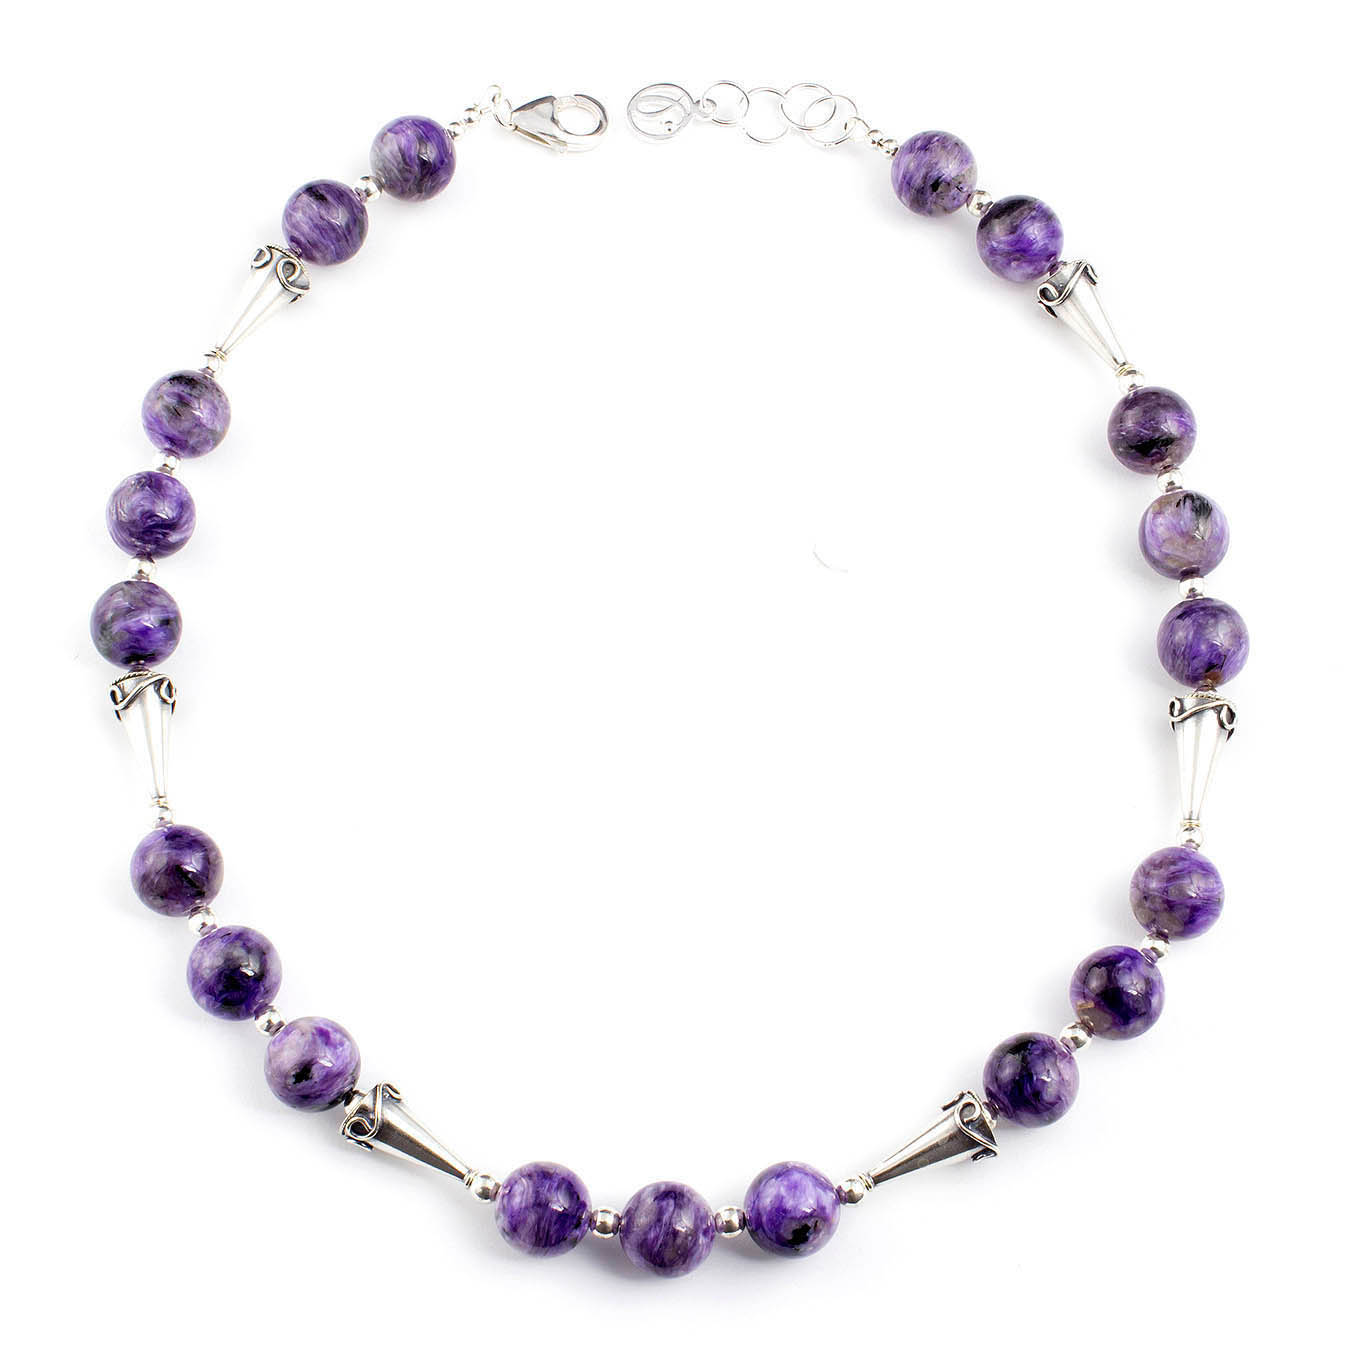 Semi-precious necklace set made with purple charoite and Bali beads